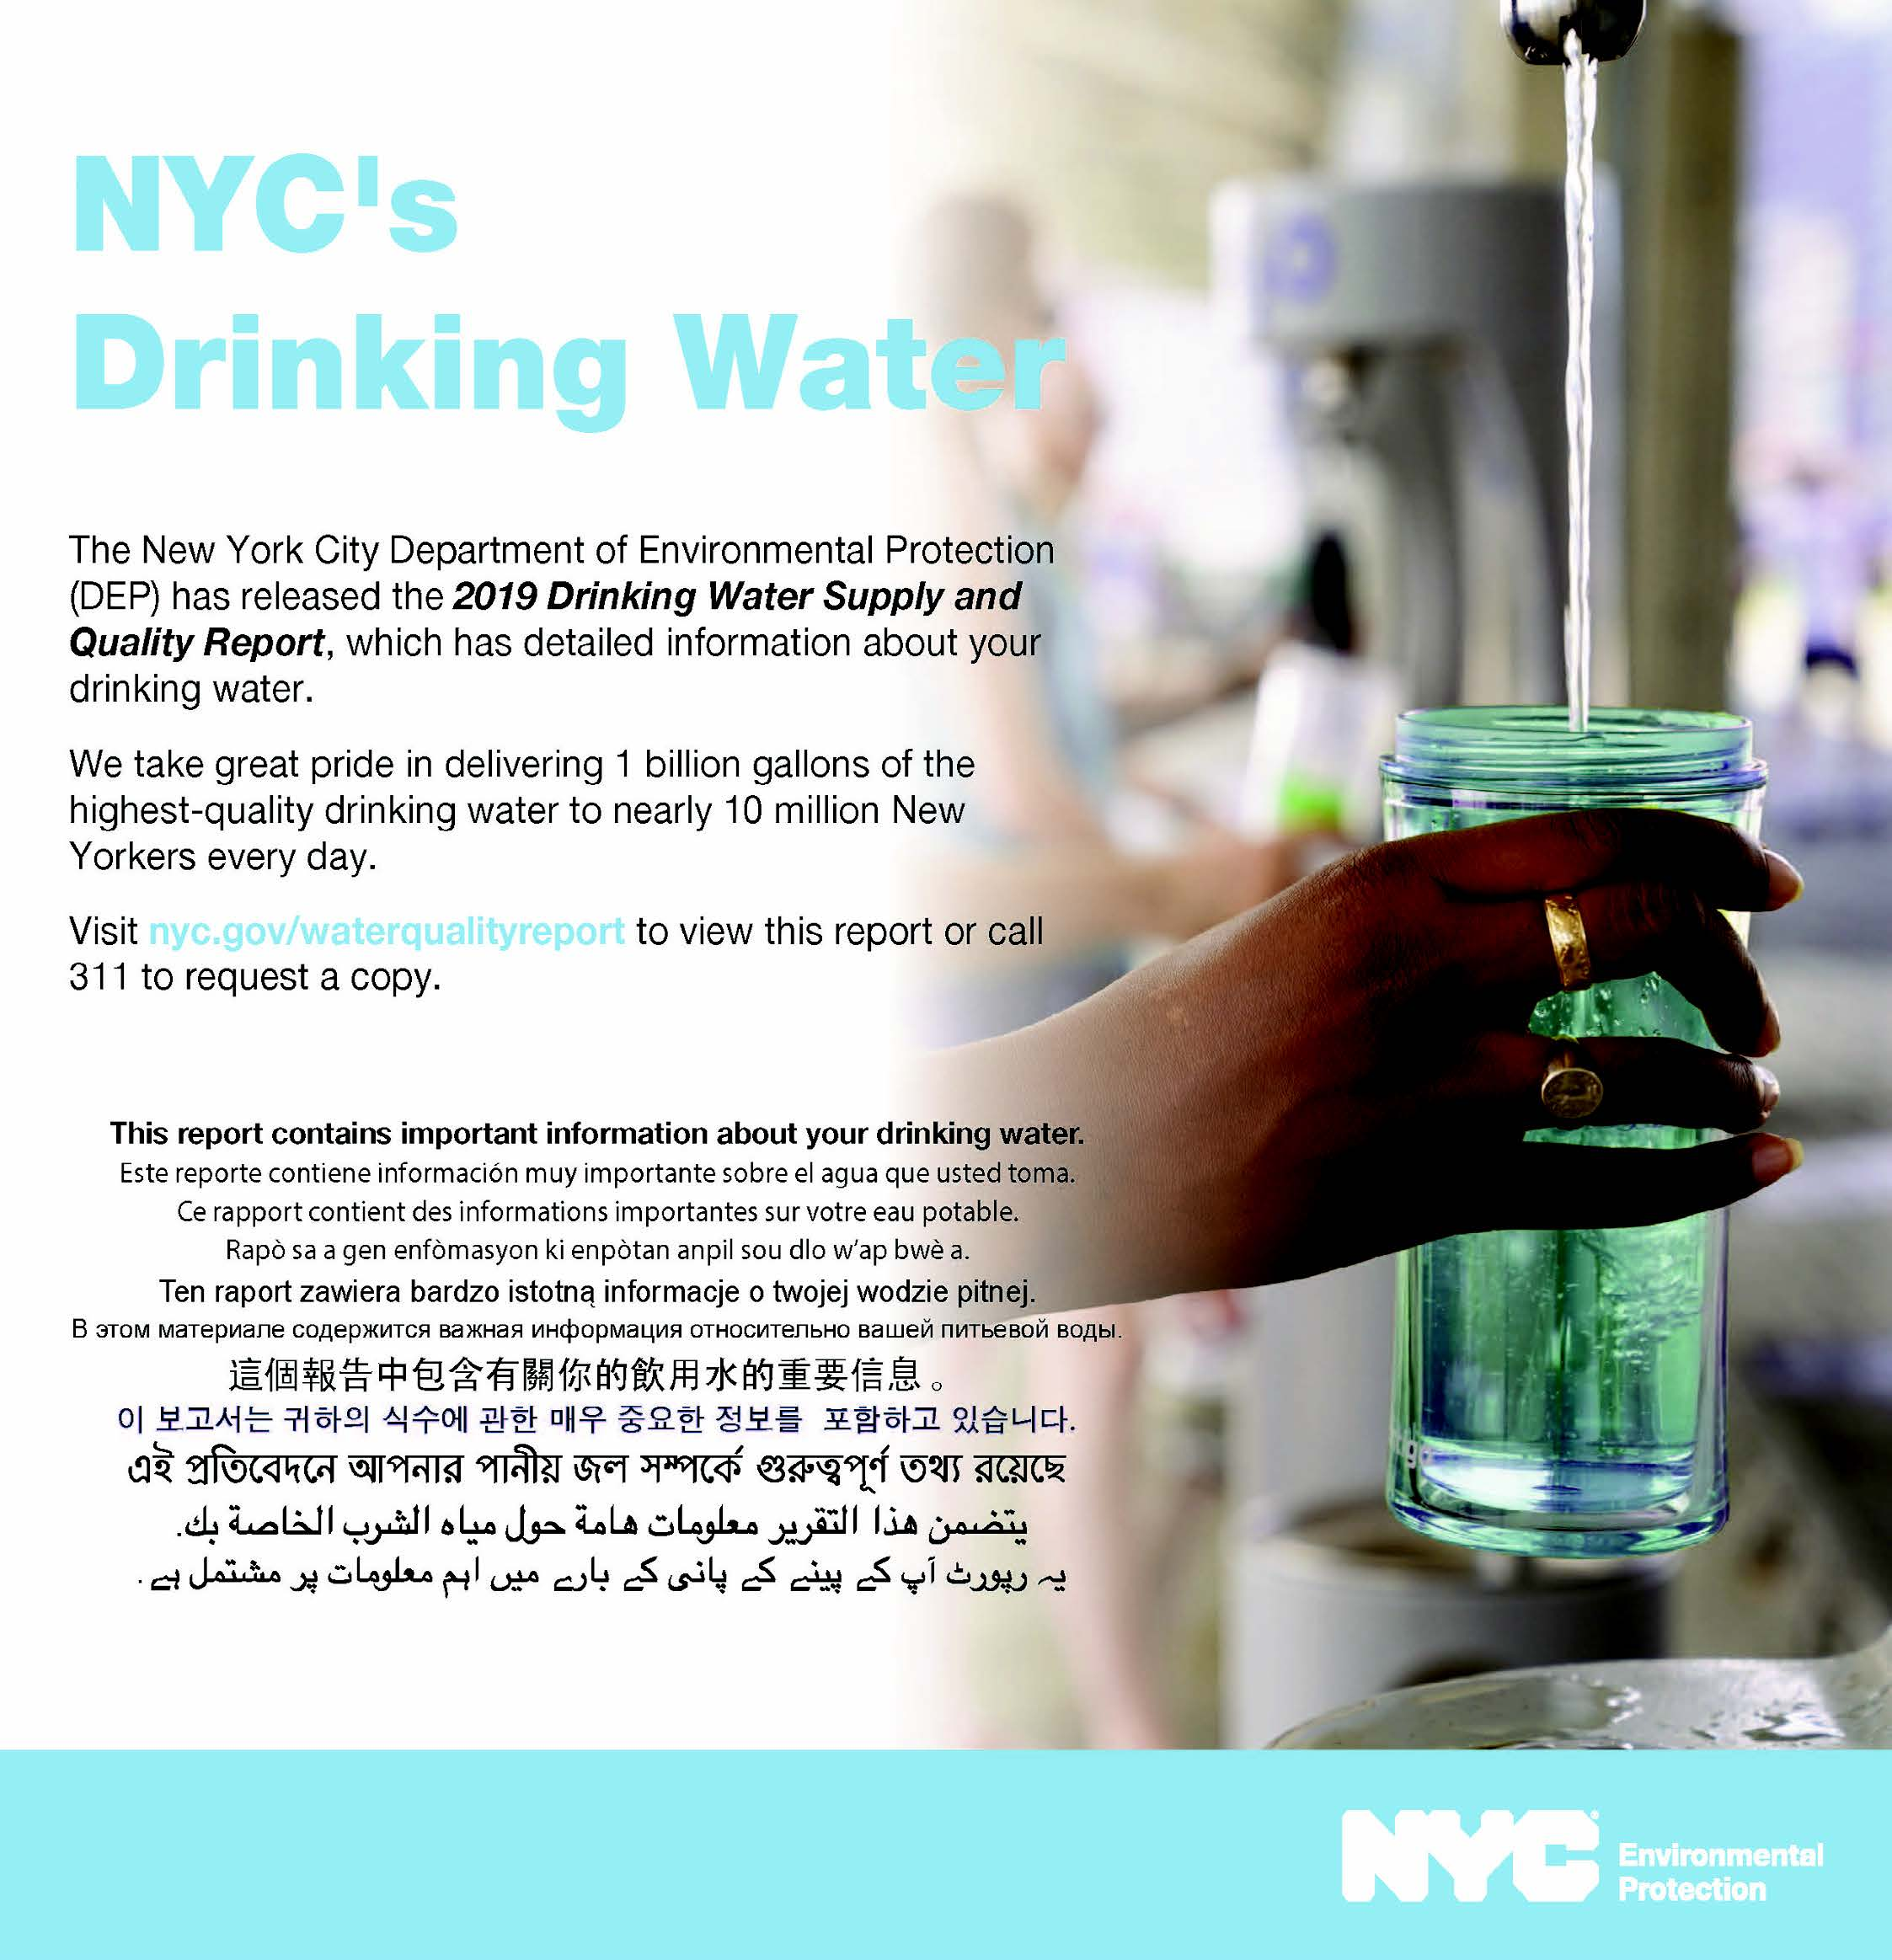 NYC's Drinking Water